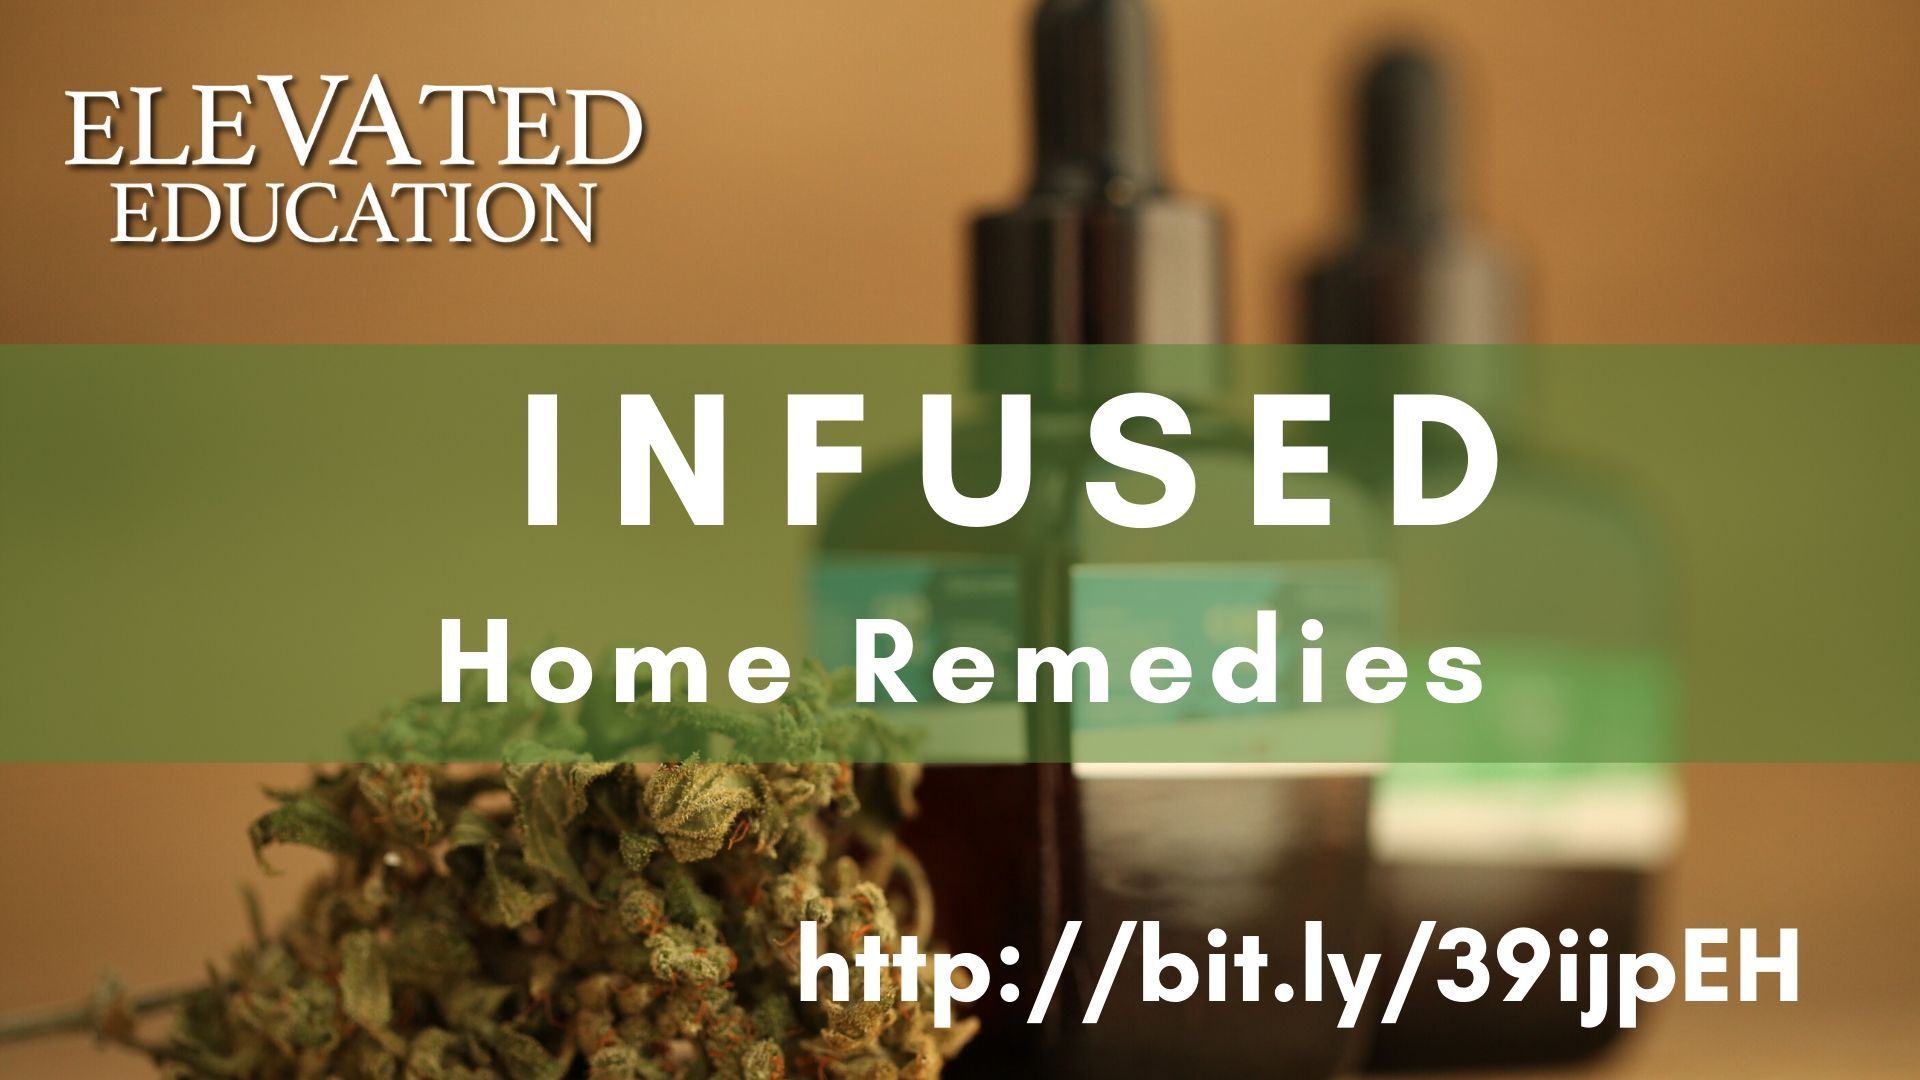 Infused Home Remedies (Elevated Education)